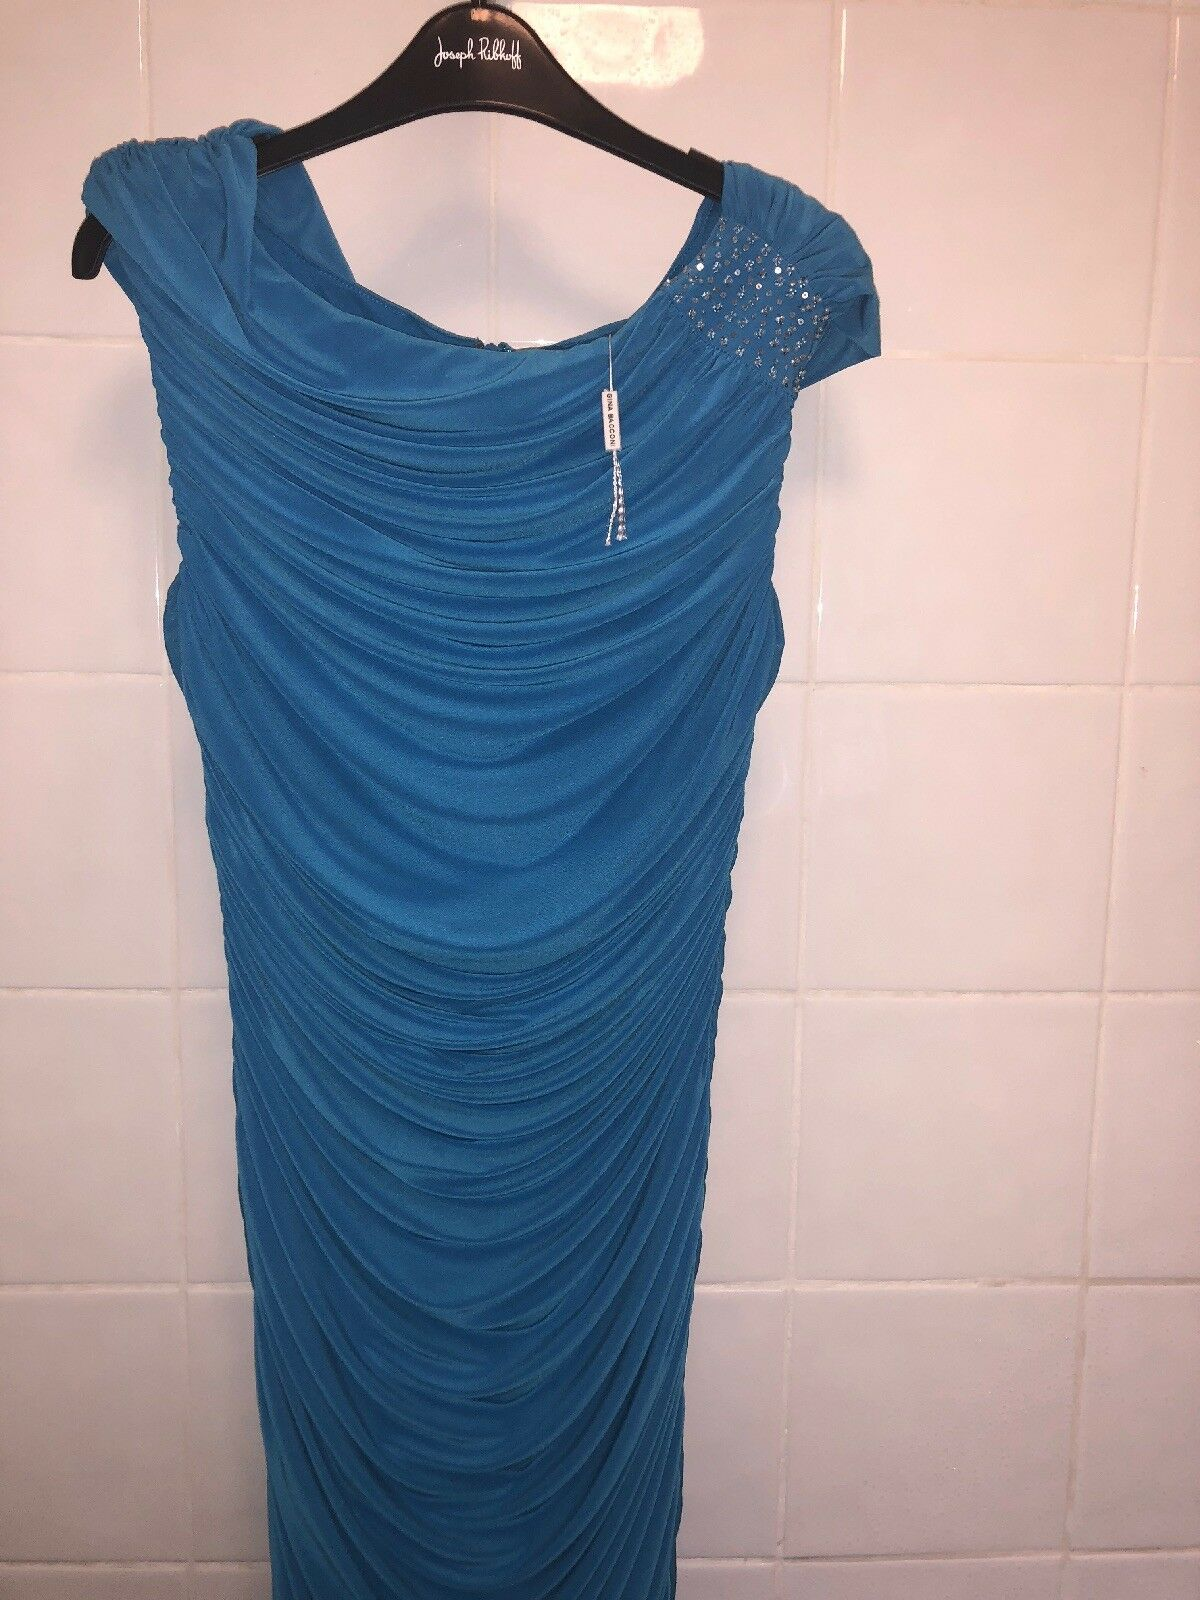 Ladies Stunbing Designer Evening Evening Evening Dress Bnwt  Gina Bacconi 0d1ad5